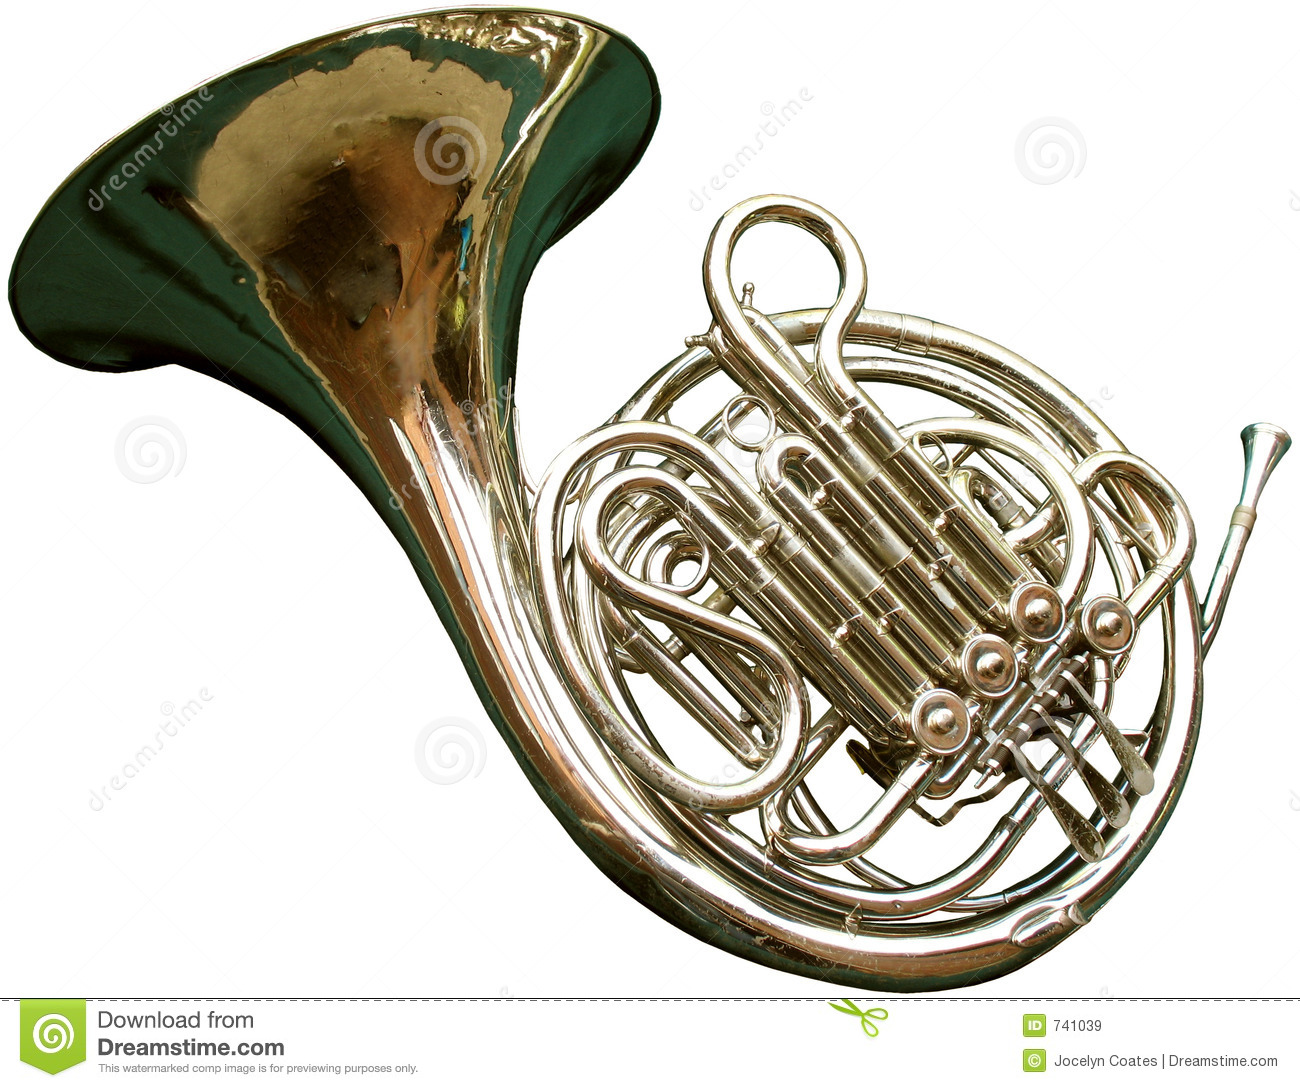 French Horn Royalty Free Stock Images - Image: 741039